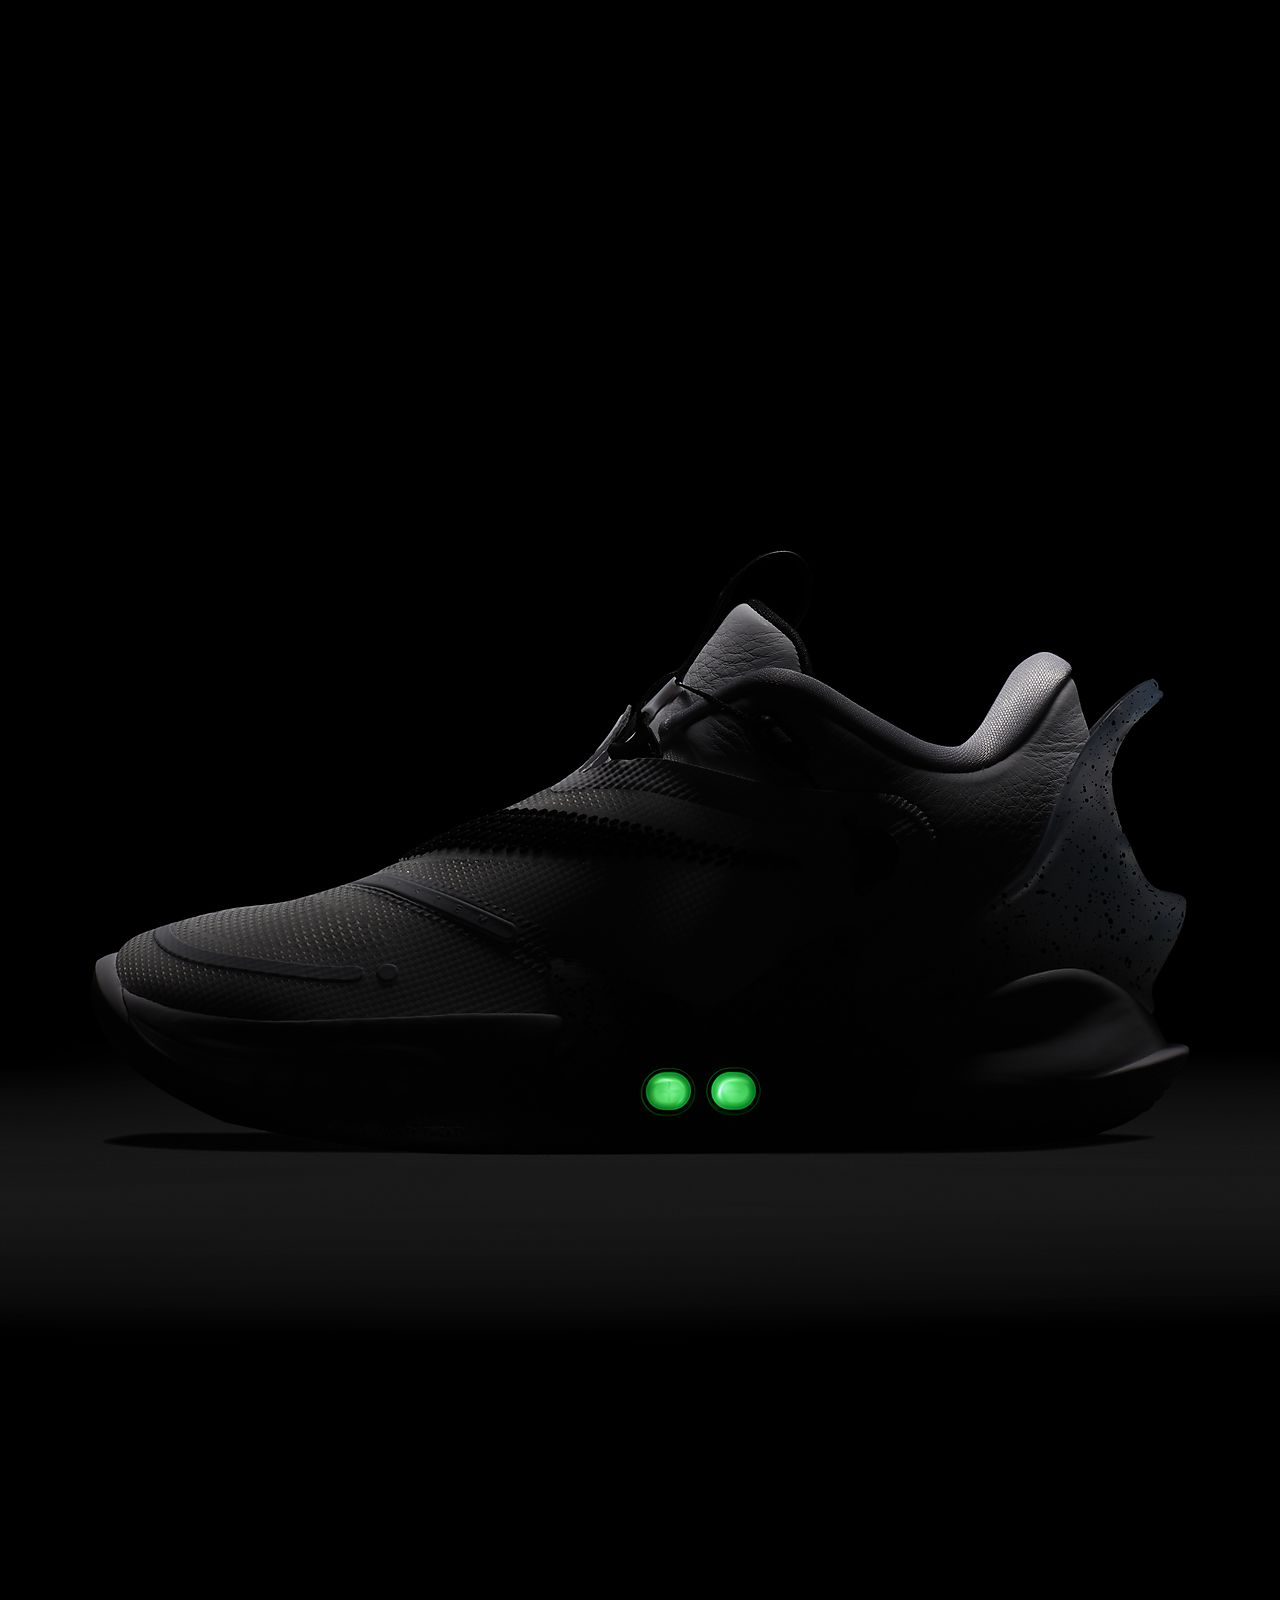 Nike Adapt Bb Shoes Price In India Shop Clothing Shoes Online